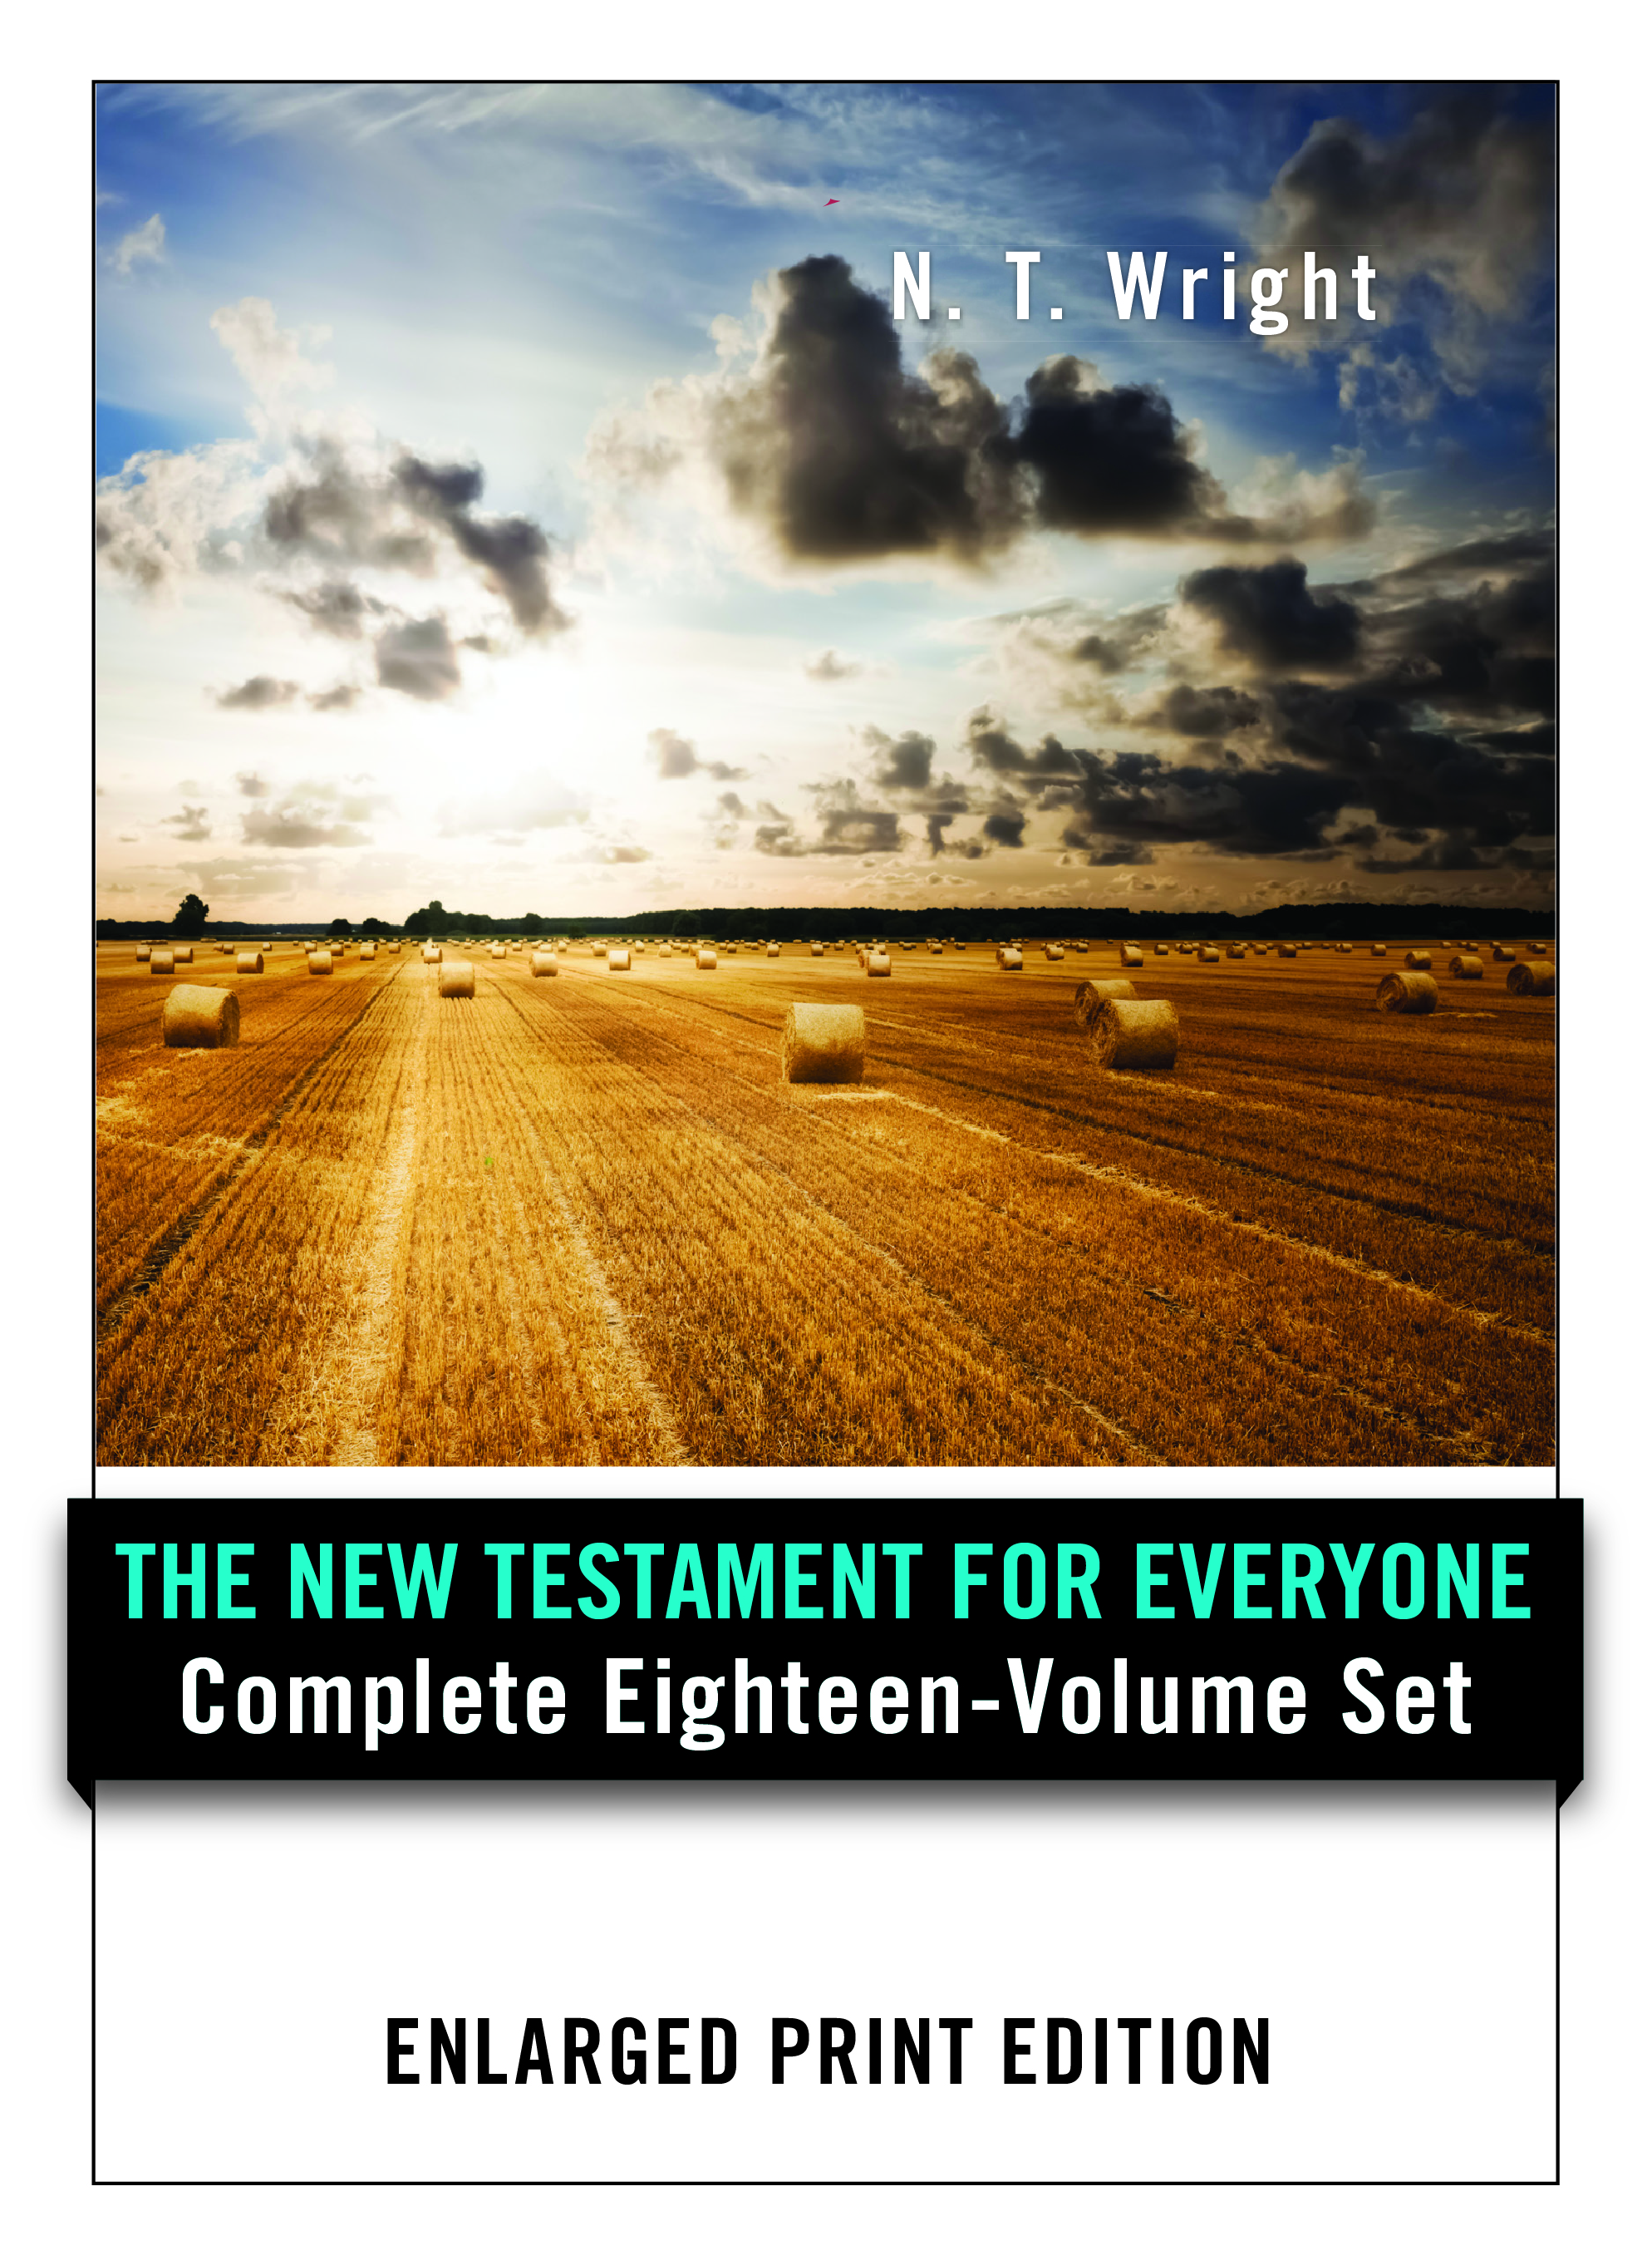 New Testament for Everyone Set - Enlarged Print Edition